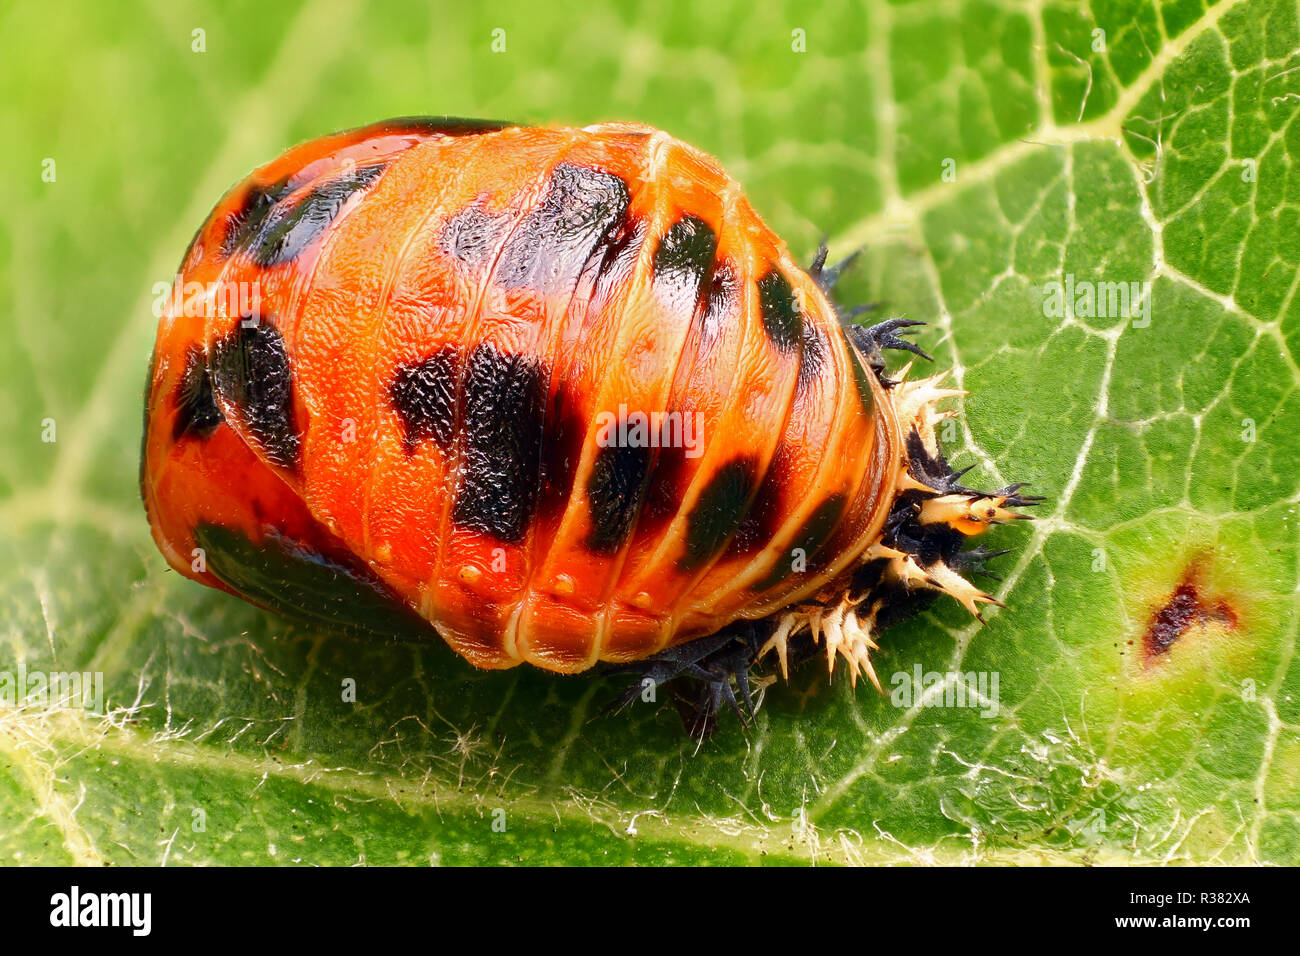 Extremely sharp and detailed study of a Harlequin ladybird pupa taken with a macro lens stacked from many images into one very sharp photo. - Stock Image